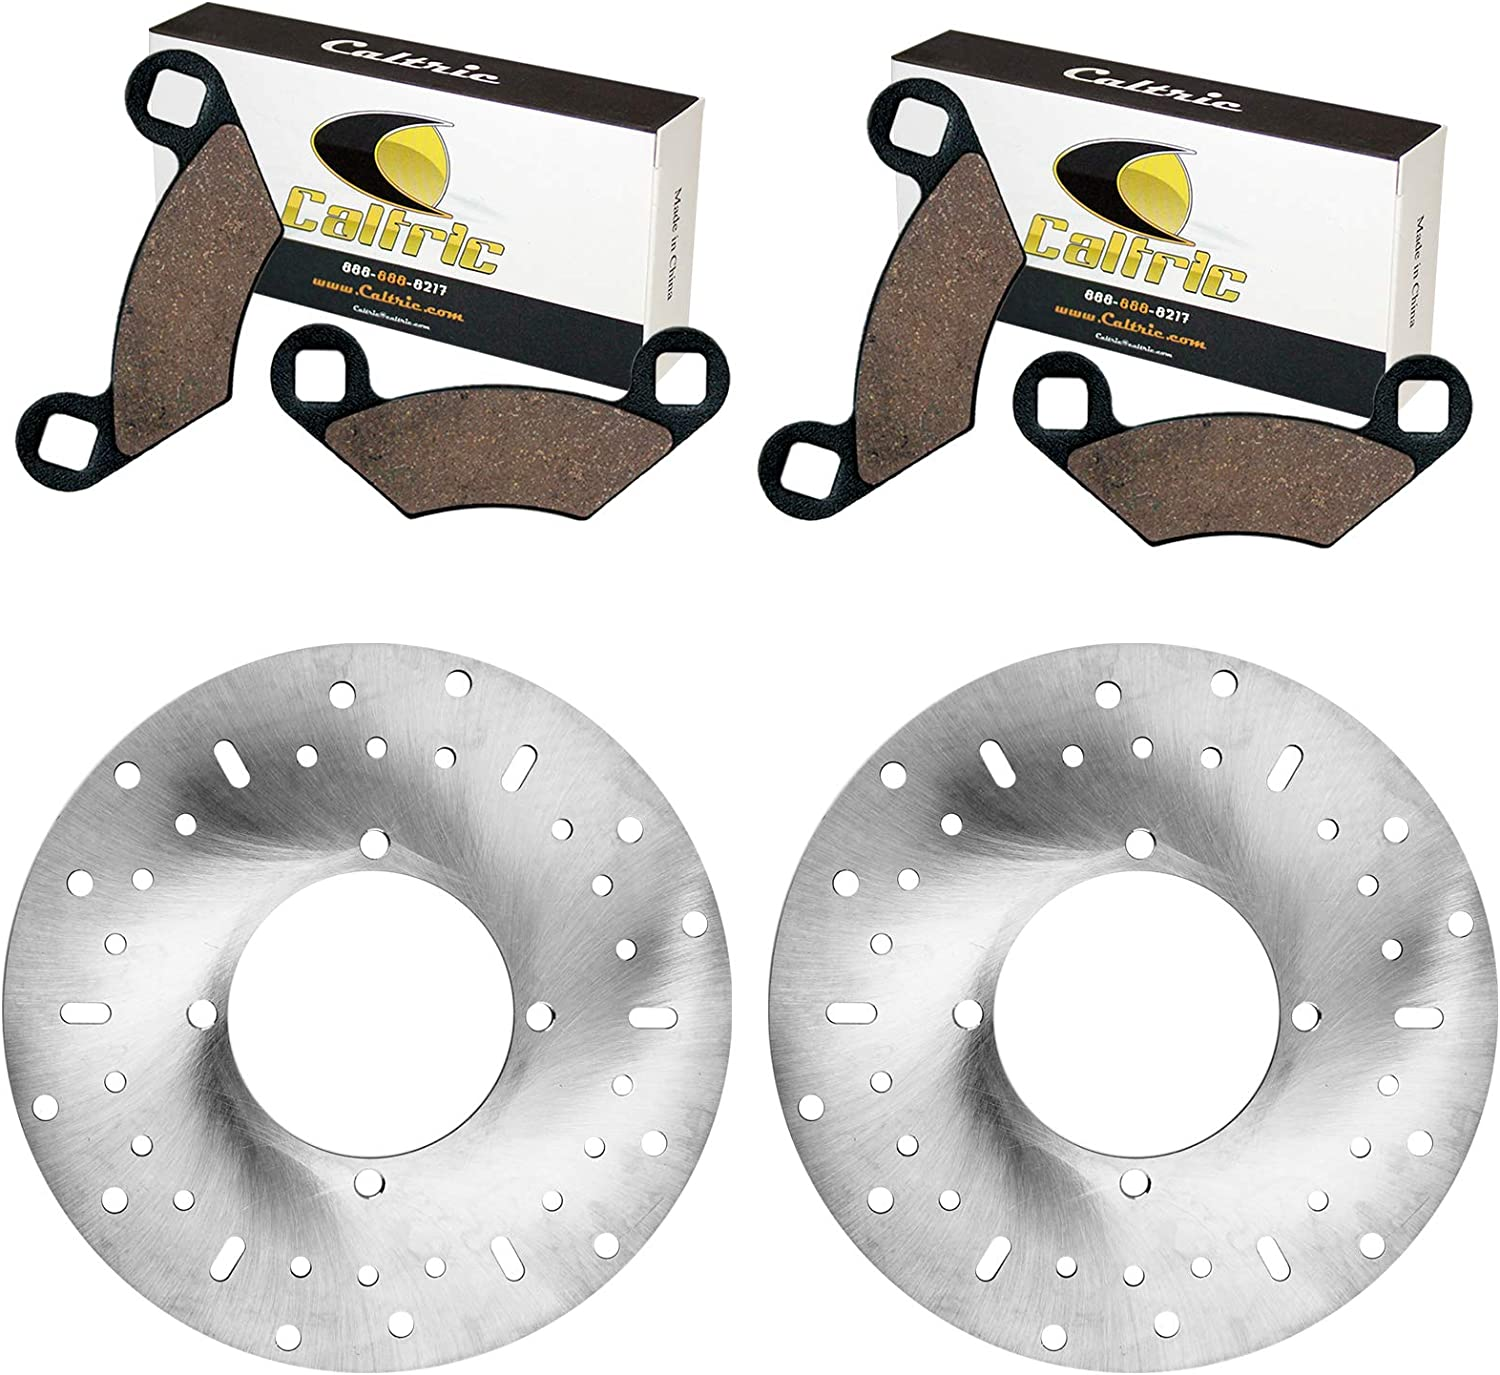 Caltric 2 Front Brake Disc Rotor Pads Polari Excellent And Compatible Reservation with